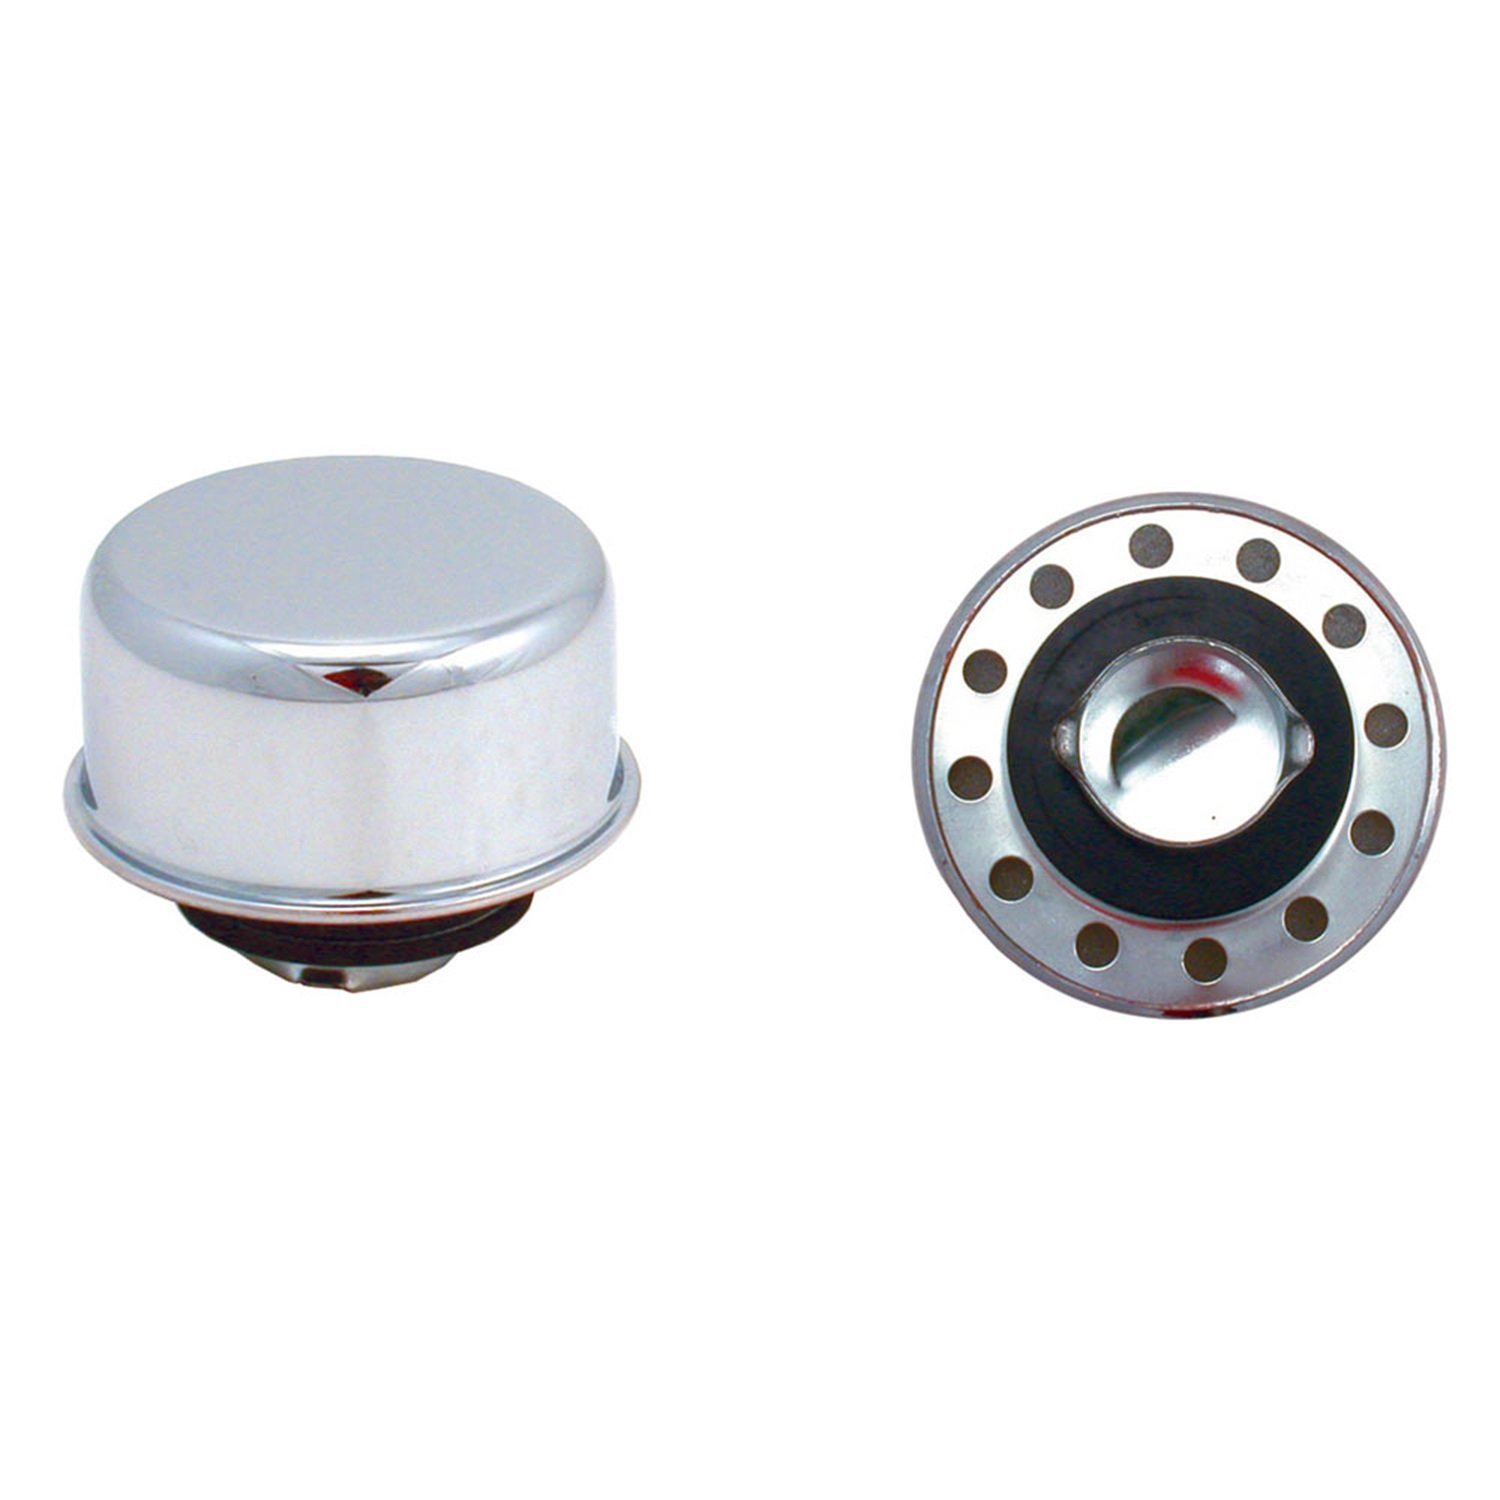 Spectre Performance 4273 Twist-In Oil Filler Breather Cap